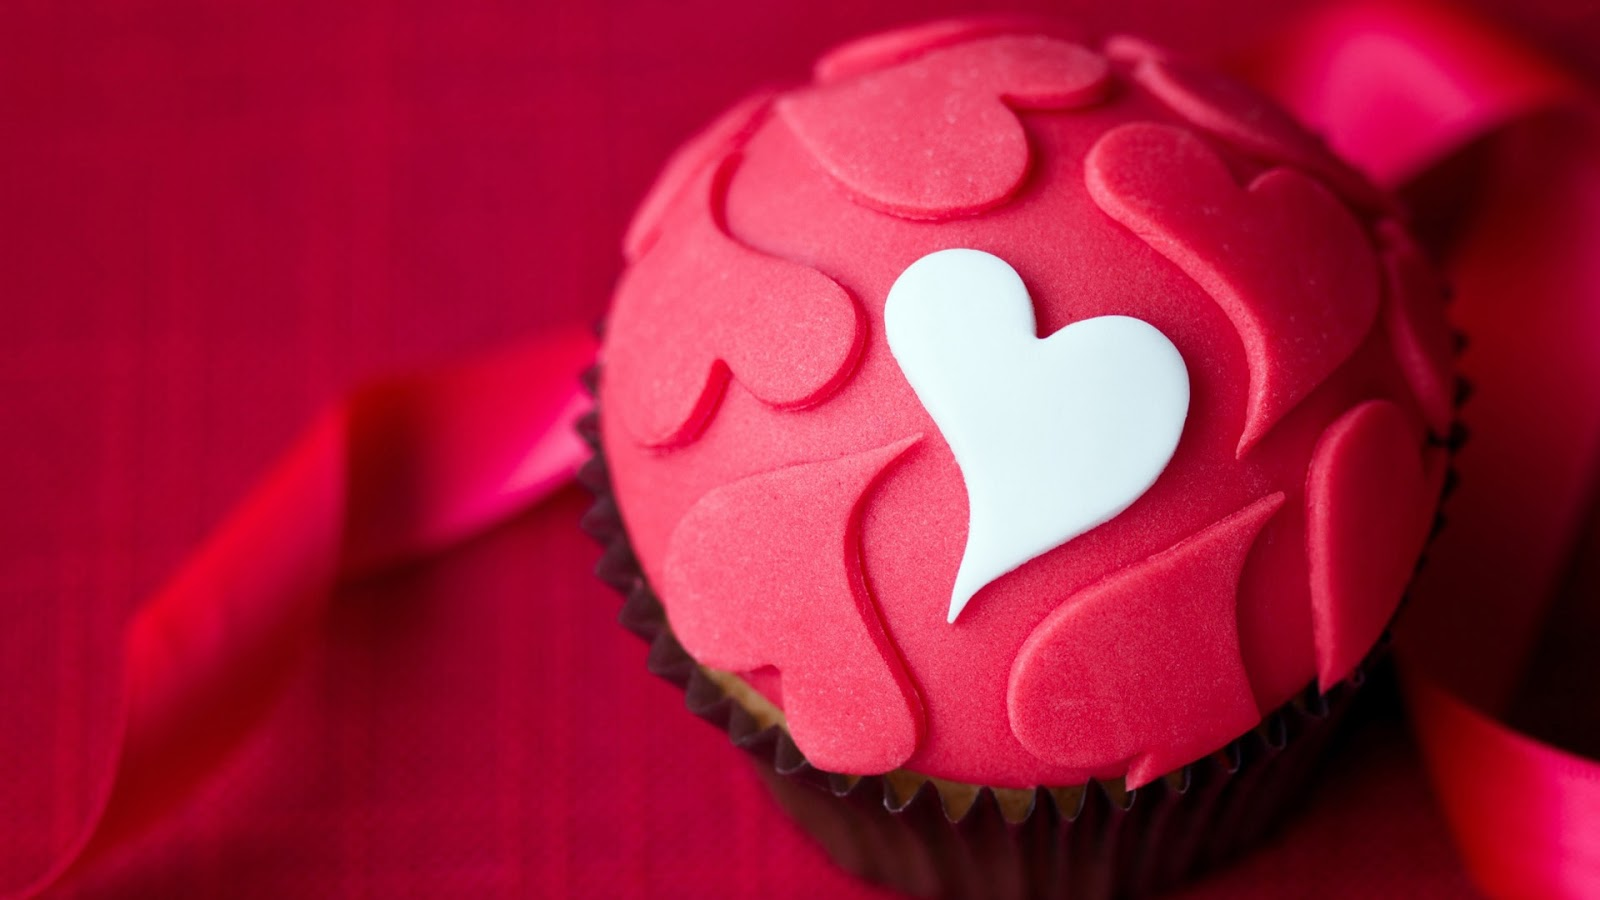 Love Cupcake 1920x1080 Wallpaper